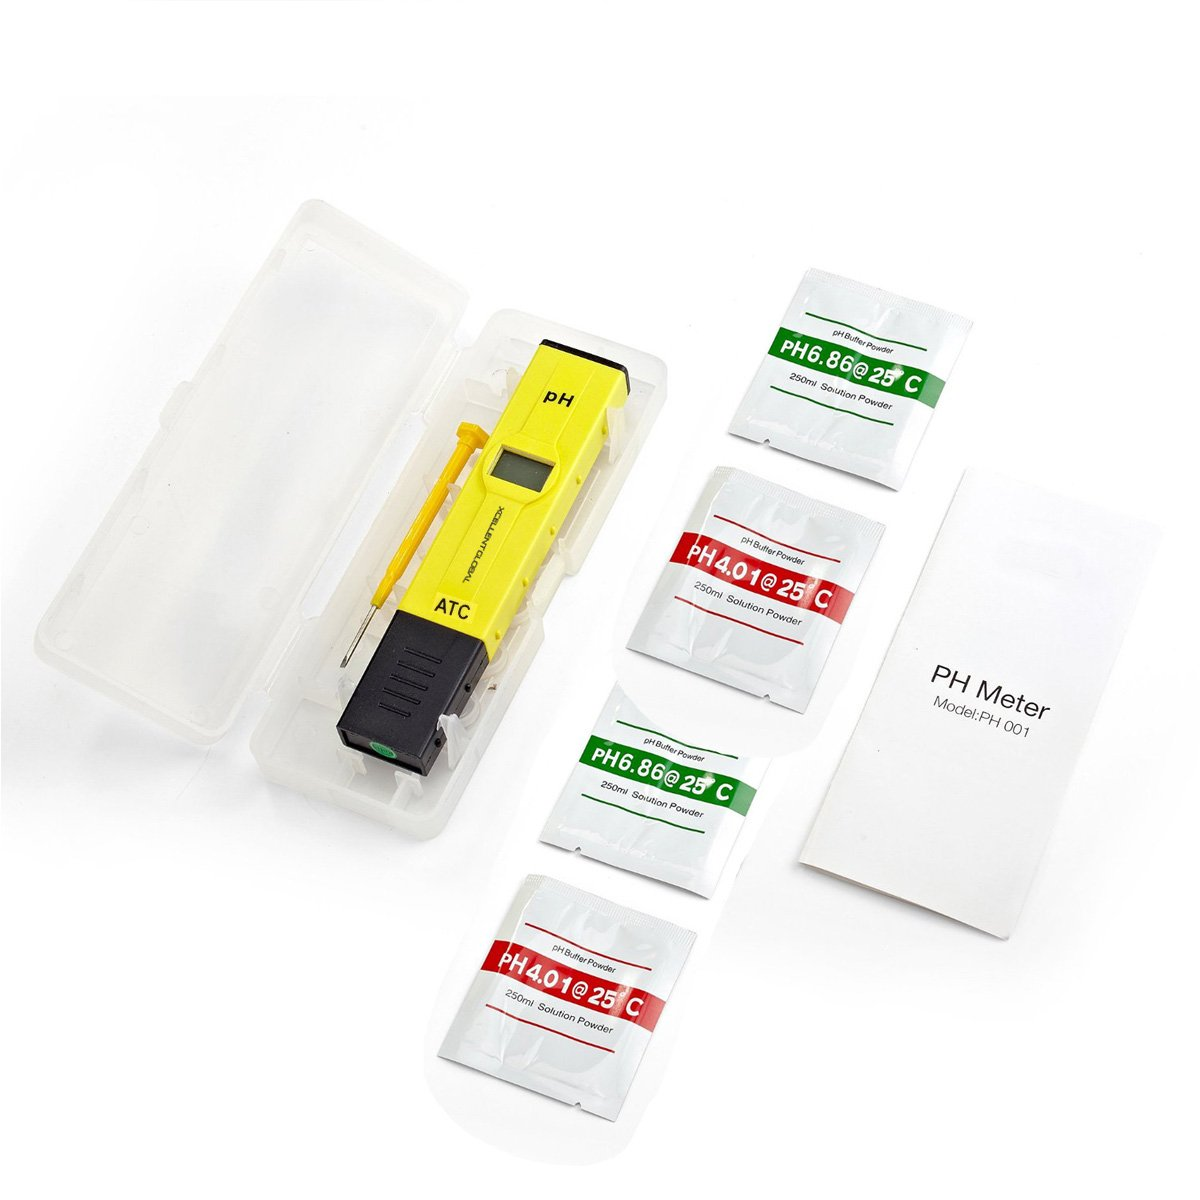 0.01pH Resolution Handheld pH Pen Tester Xcellent Global 0.05 pH High Accuracy Digital Pocket Size pH Meter Tester with ATC 0~50 Degree Handheld 0~14 pH Measurement Range and Backlit LCD Yellow HG076 Portable